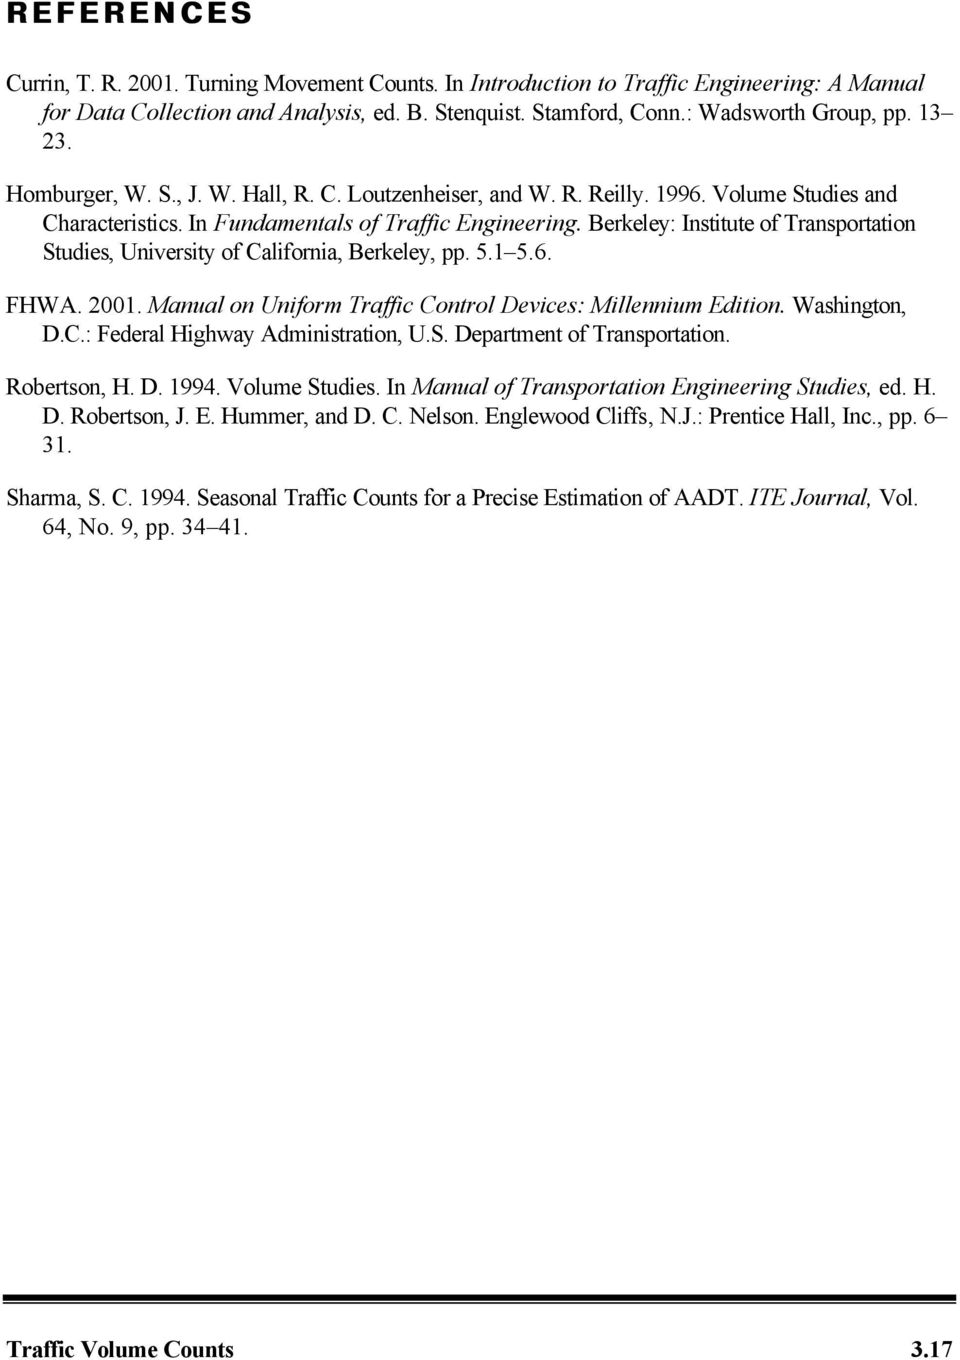 Berkeley: Institute of Transportation Studies, University of California, Berkeley, pp. 5.1 5.6. FHWA. 2001. Manual on Uniform Traffic Control Devices: Millennium Edition. Washington, D.C.: Federal Highway Administration, U.